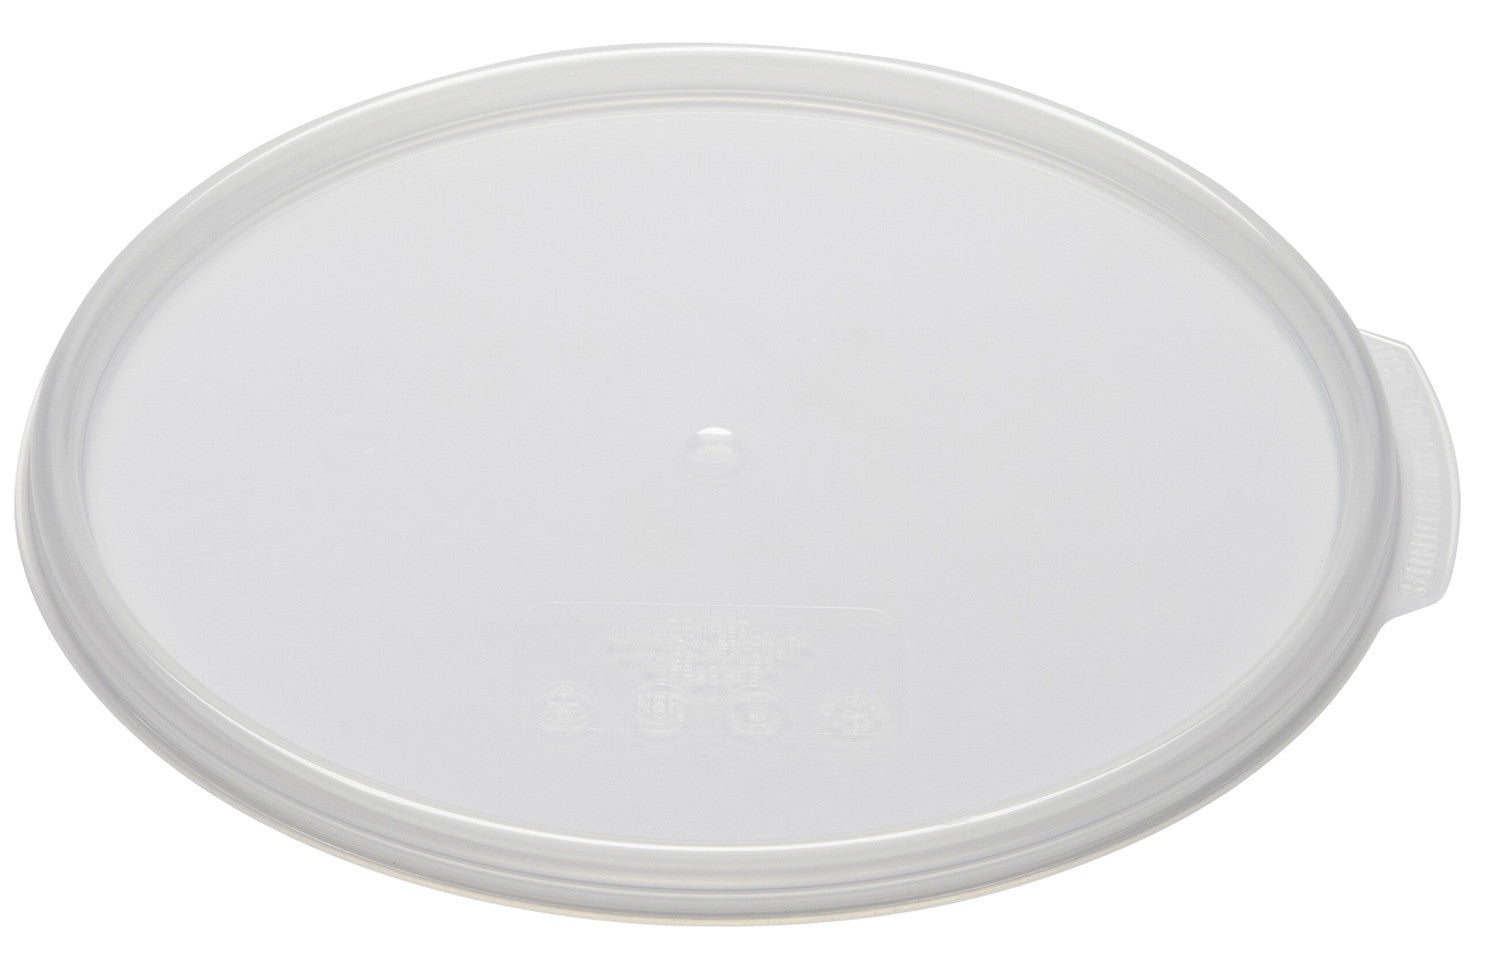 Cambro Round Clear Container, Food Container - eKitchenary